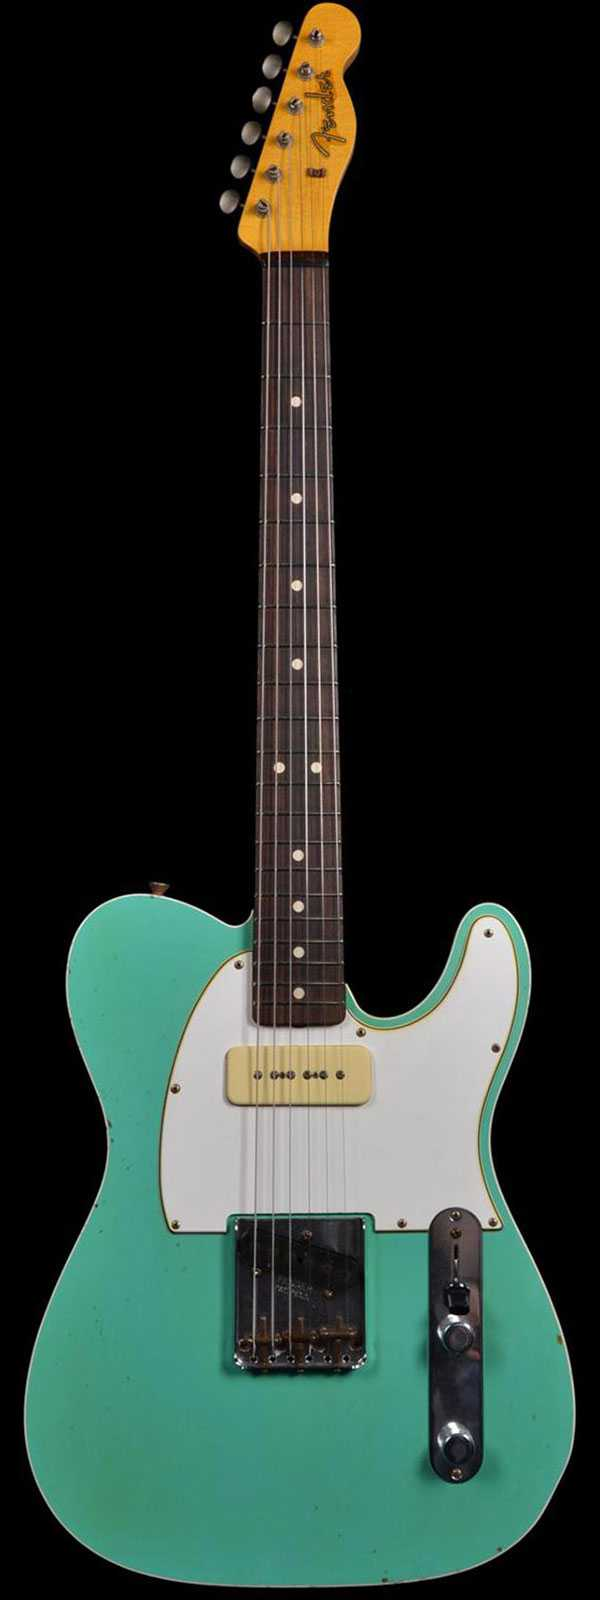 Fender 1963 Custom P90 Relic Telecaster Seafoan Green Black Back Preowned